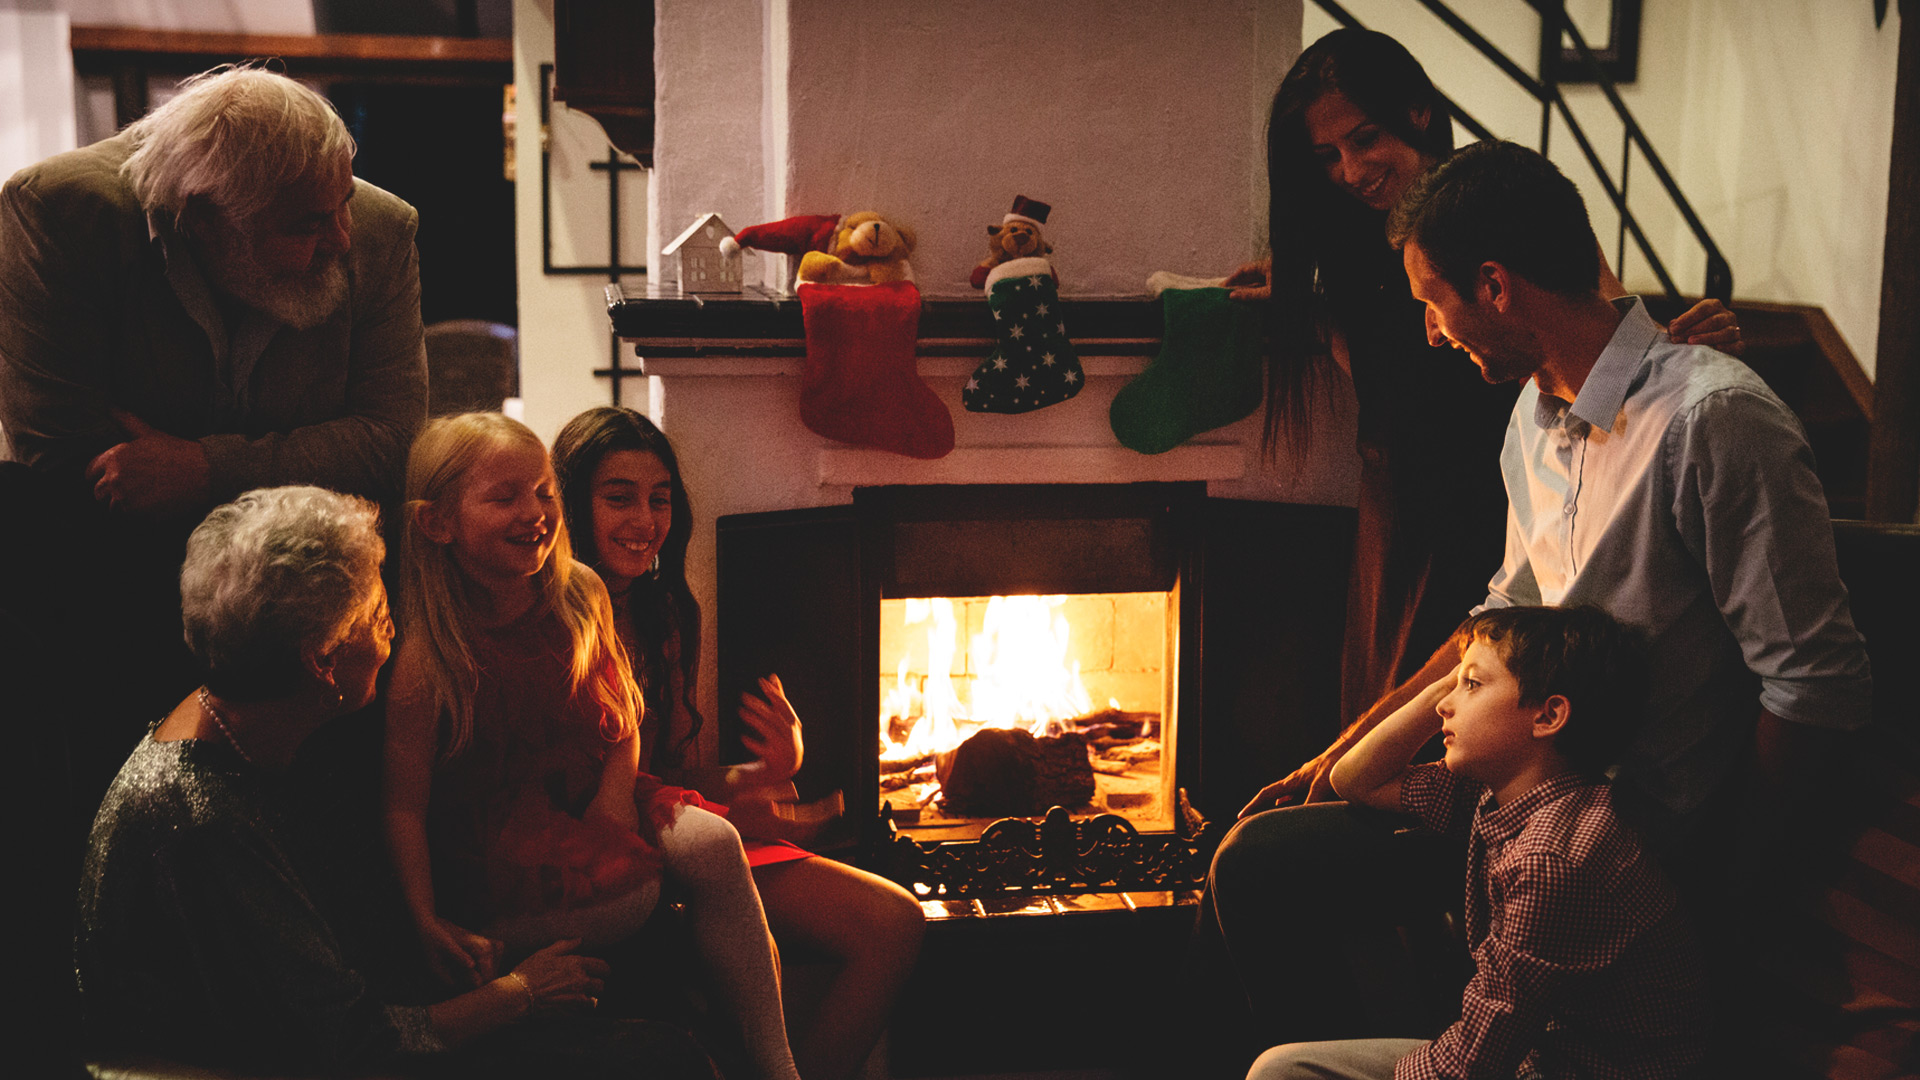 Family gathered at the fireplace at Christmas time